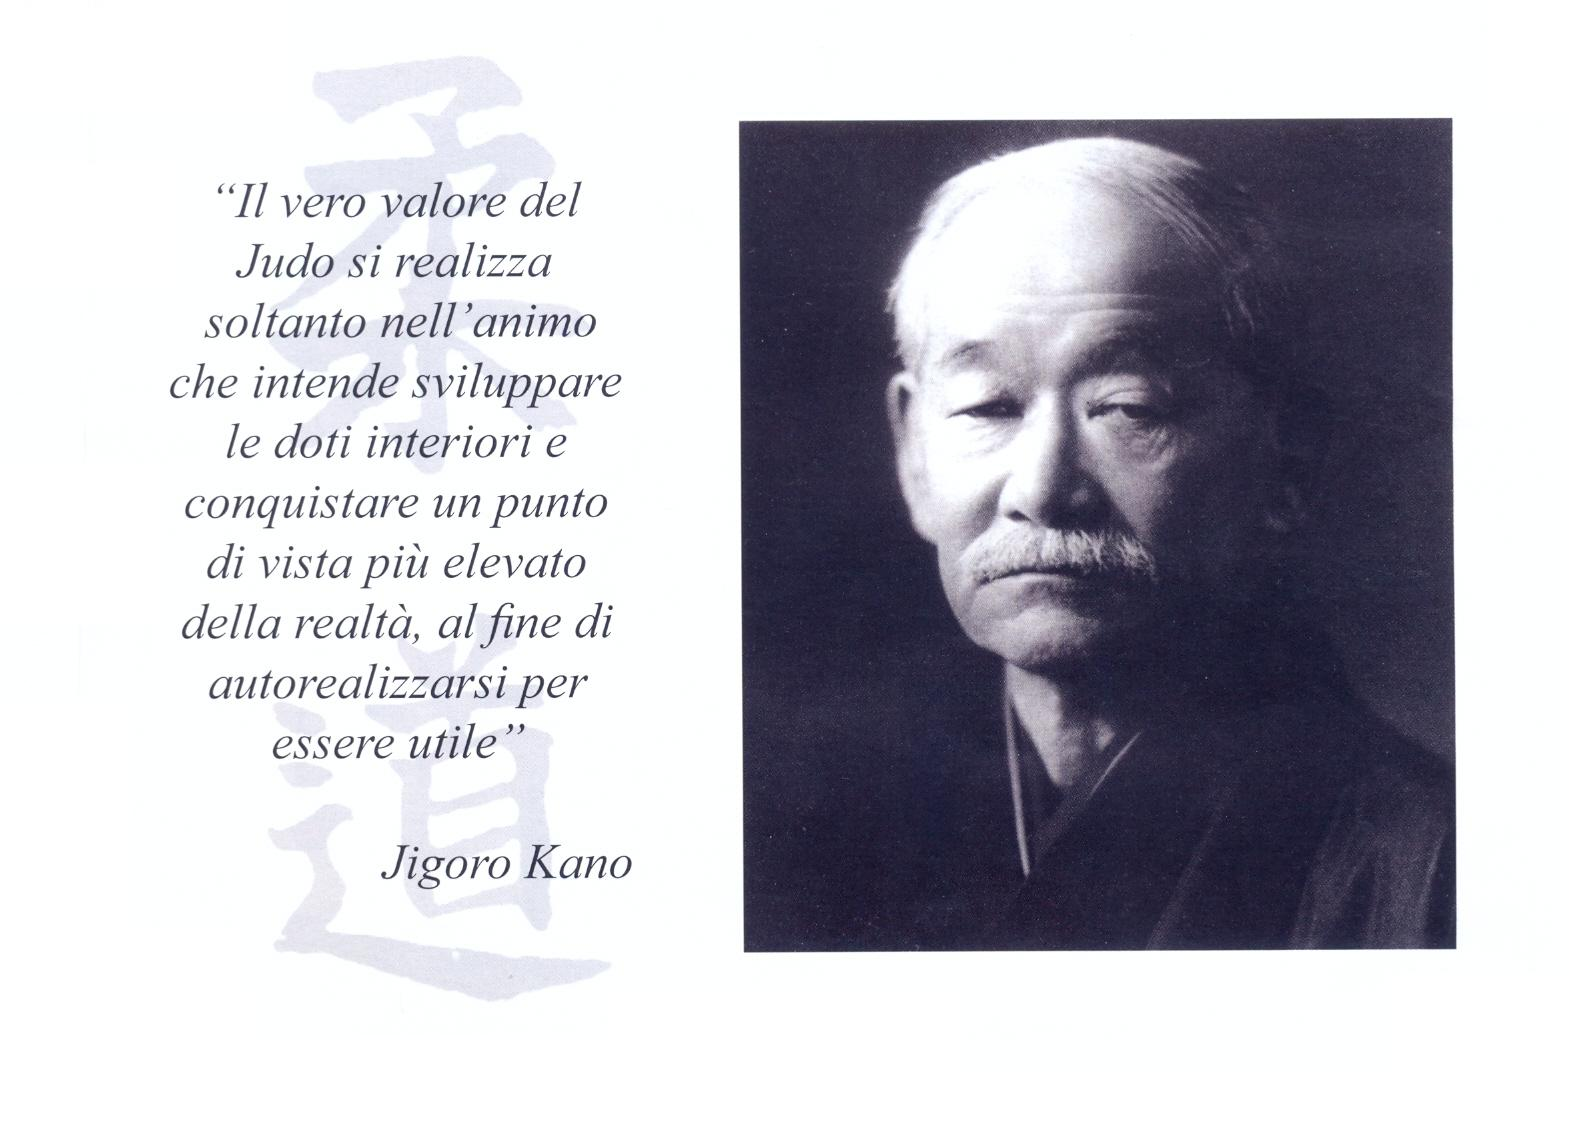 an essay on kano jigoro In 1882 jigoro kano (1860-1938) founded kodokan judo at eishoji temple in   an interesting collection of essays and letters that outlines the development of.